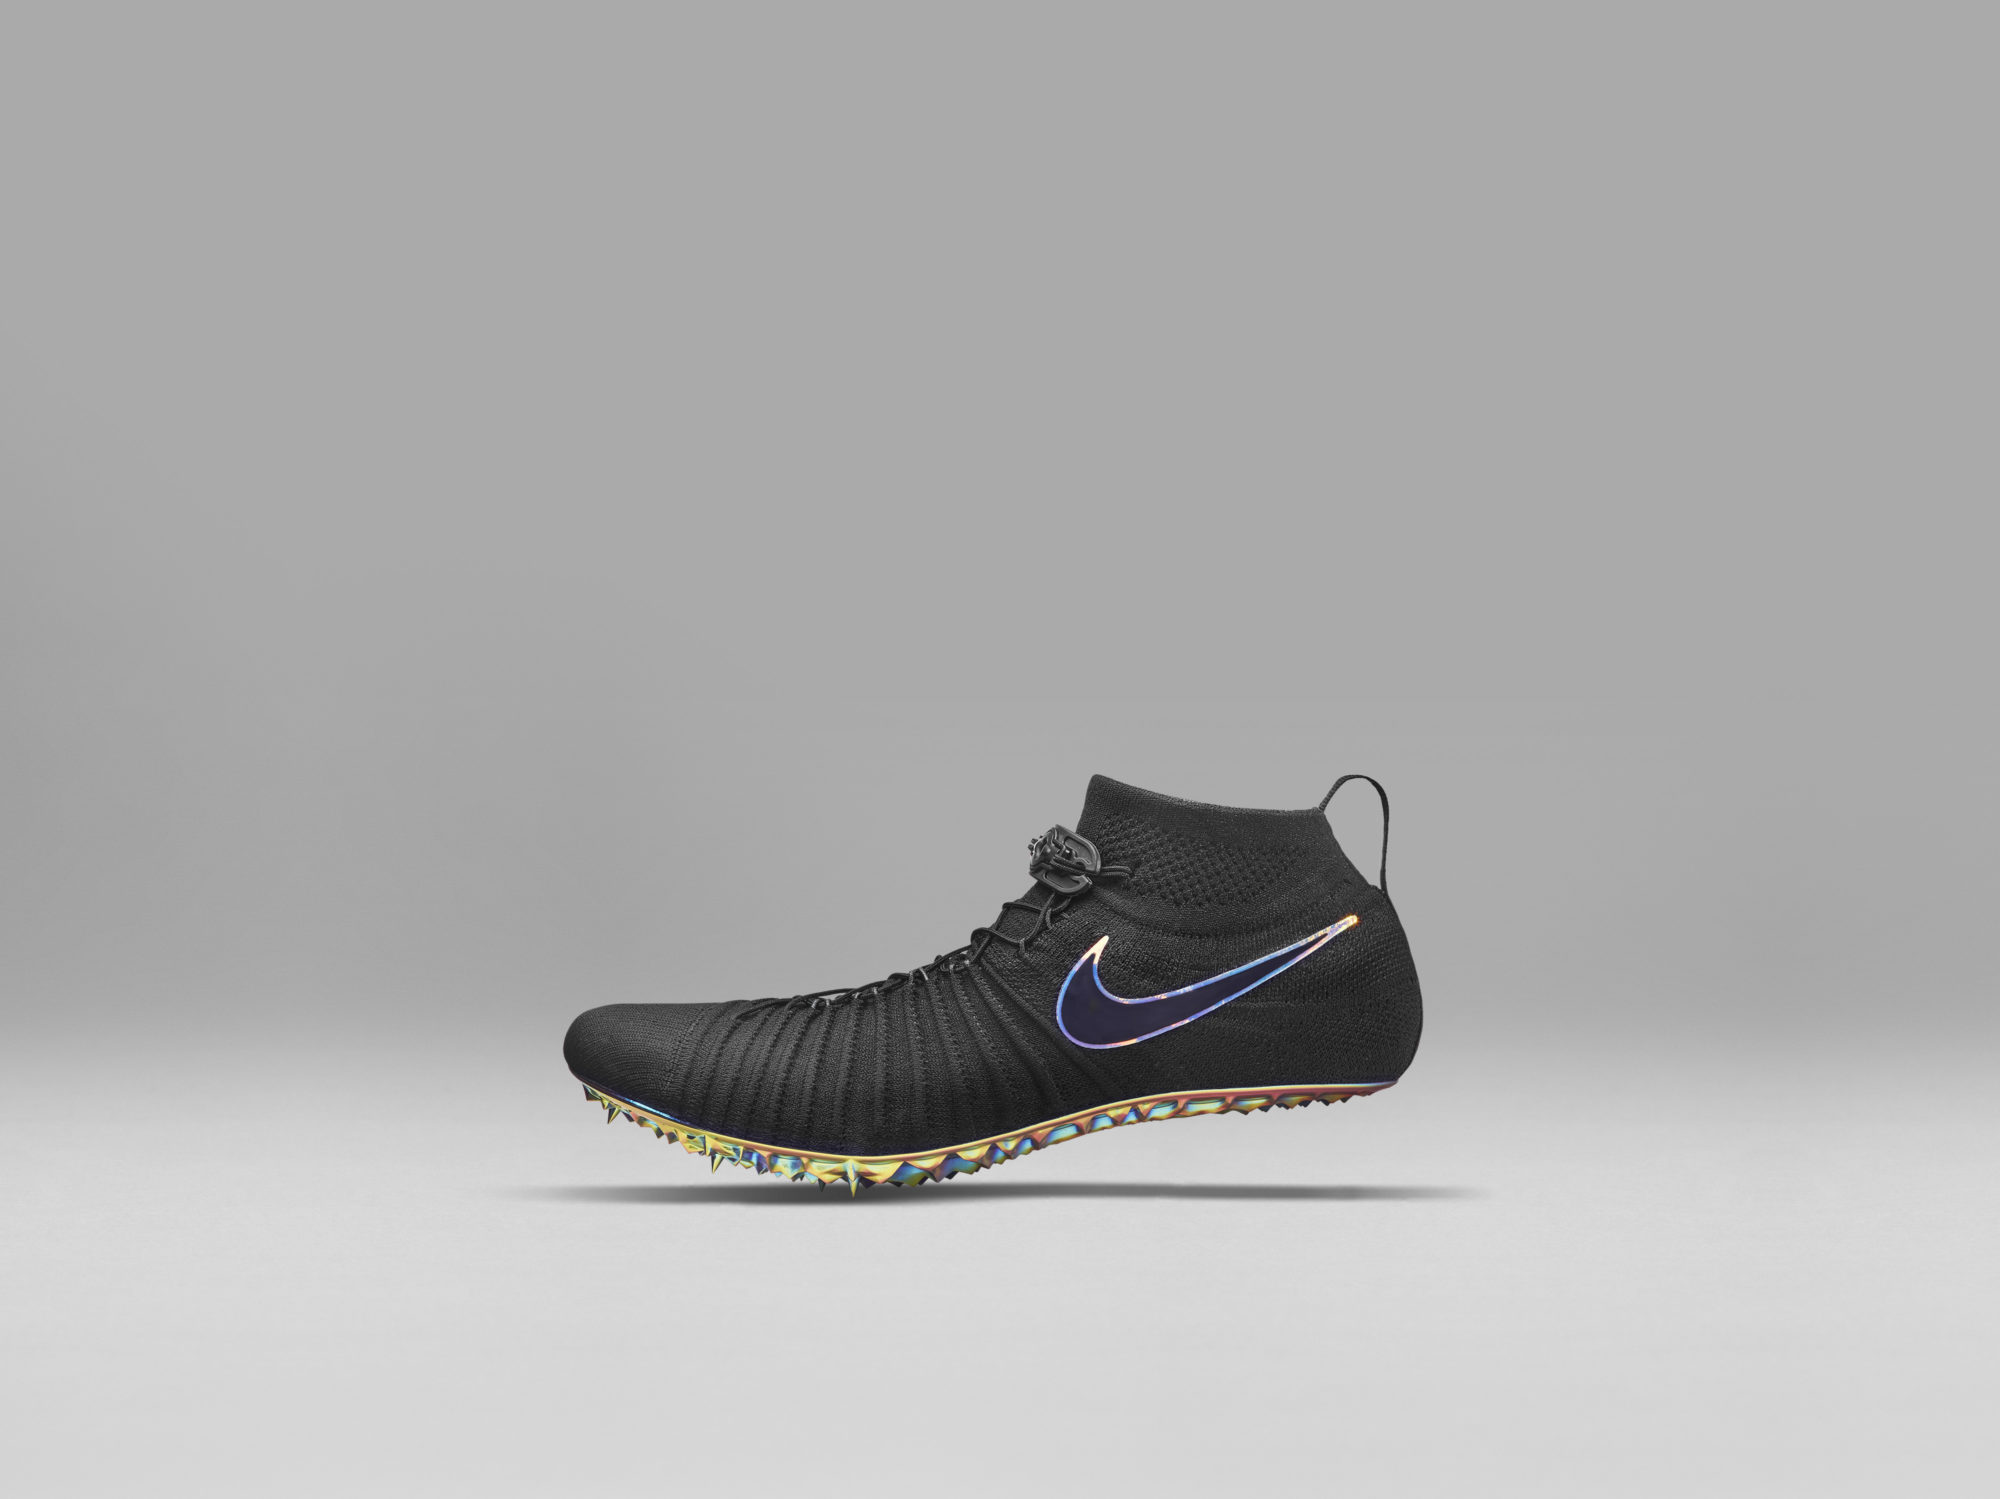 wholesale dealer 5da7d d2d0a The Nike Zoom Superfly Flyknit sprinting shoe. (Photo  Courtesy Nike) …